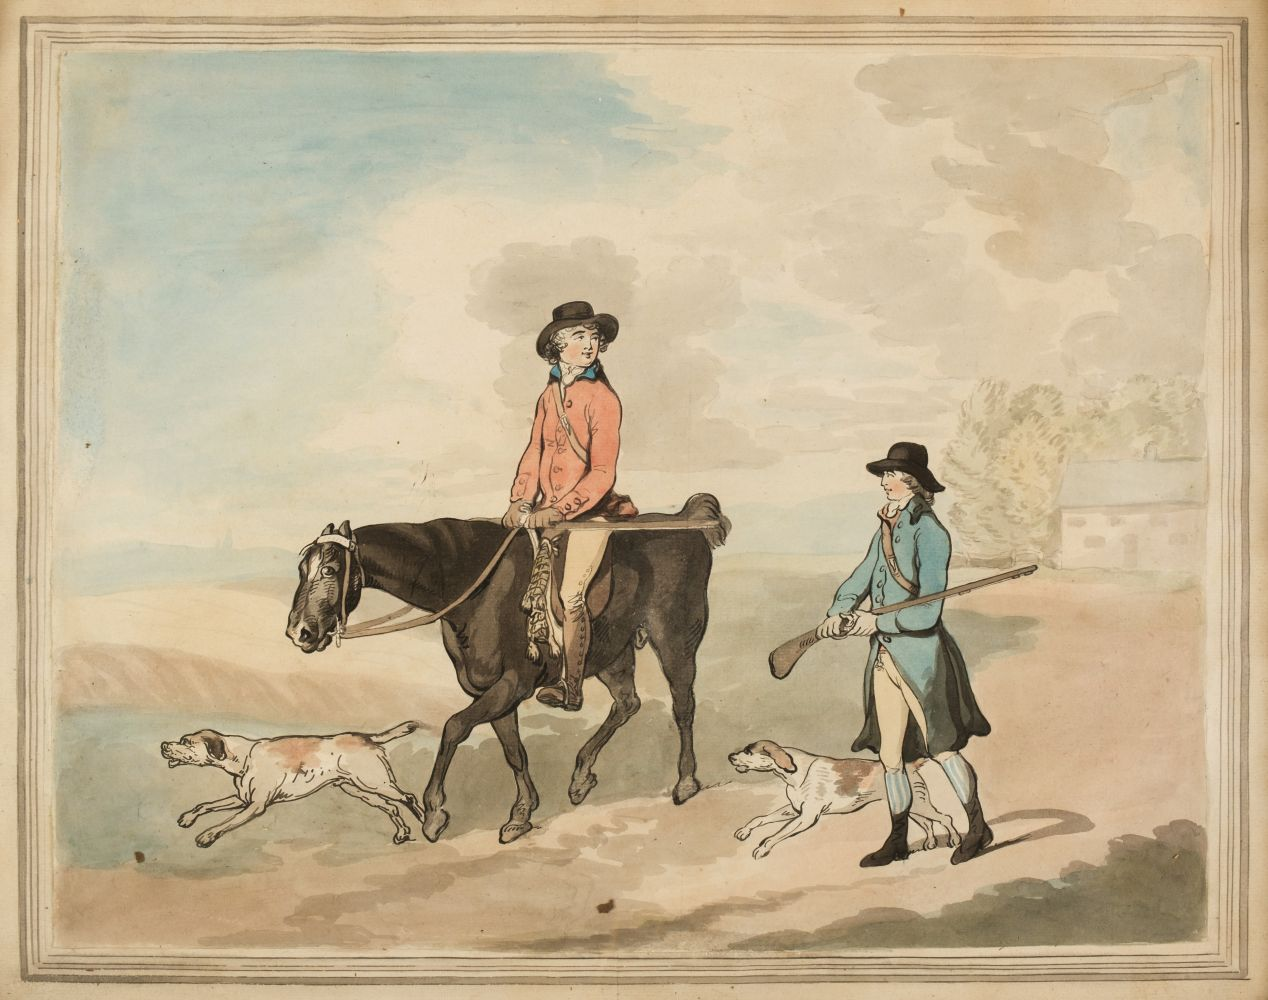 * Rowlandson (Thomas, style of). Sportsmen departing for a days shooting, circa 1800